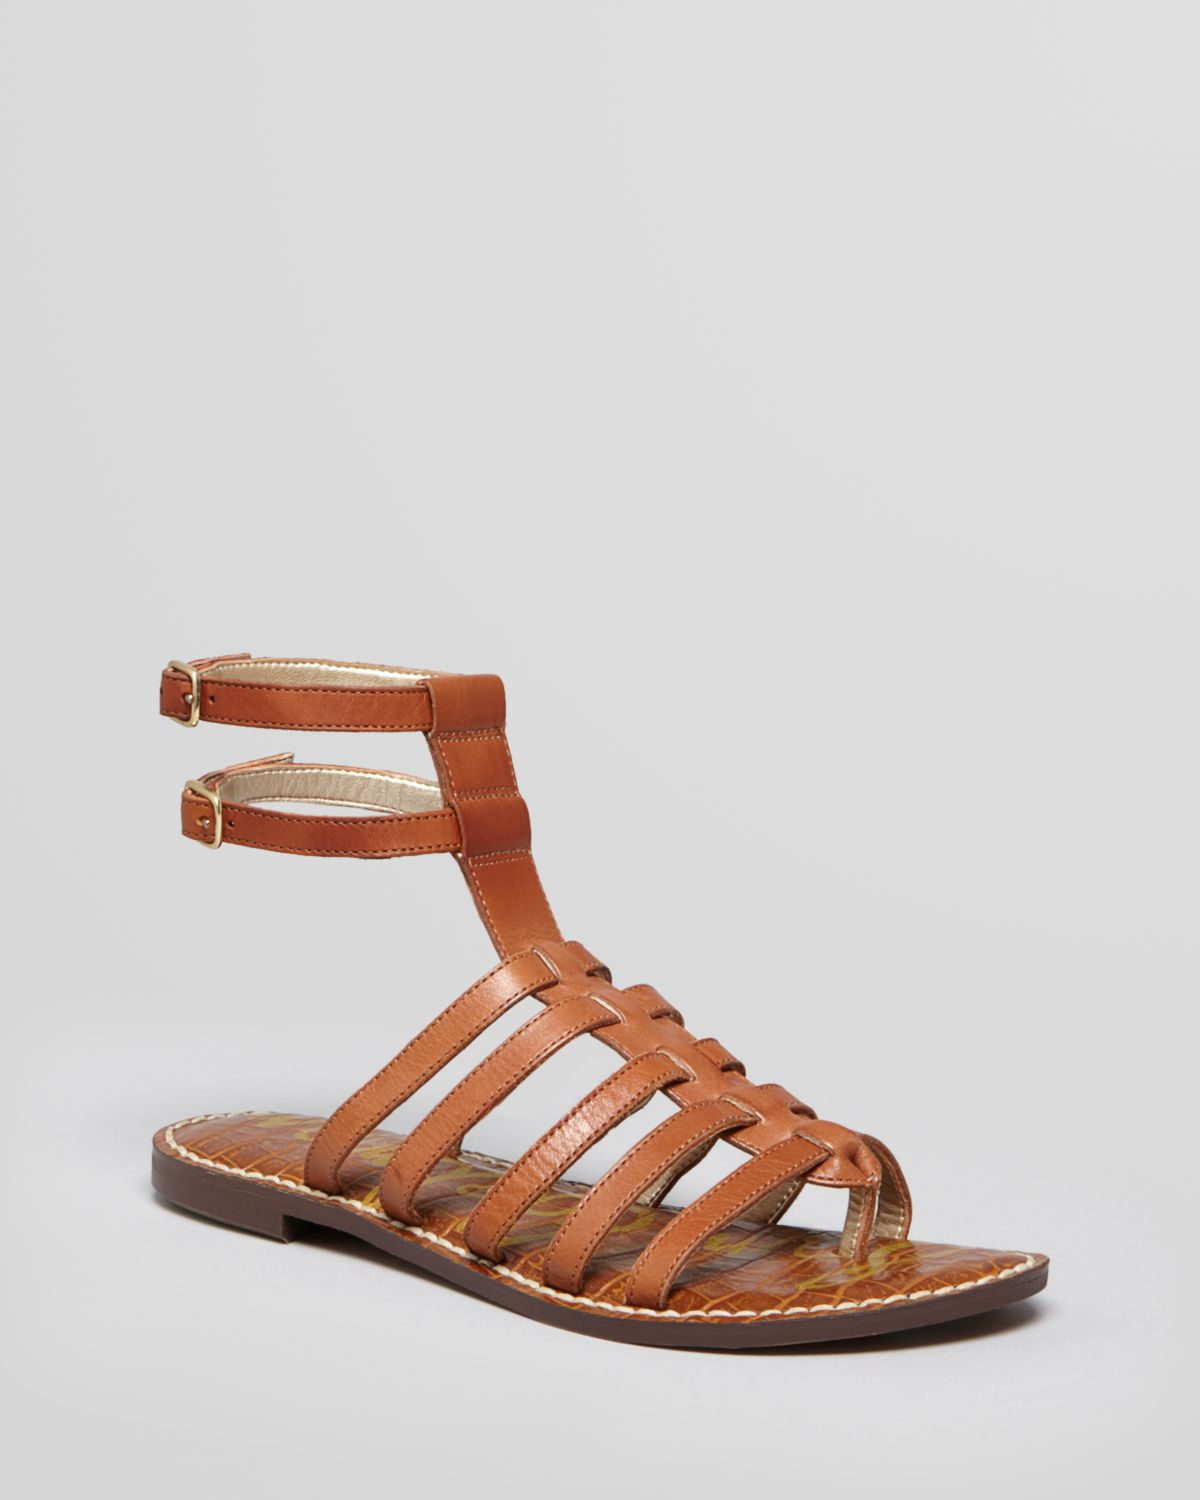 e7c4678da9ed Lyst - Sam Edelman Gladiator Sandals Gilda Flat in Brown